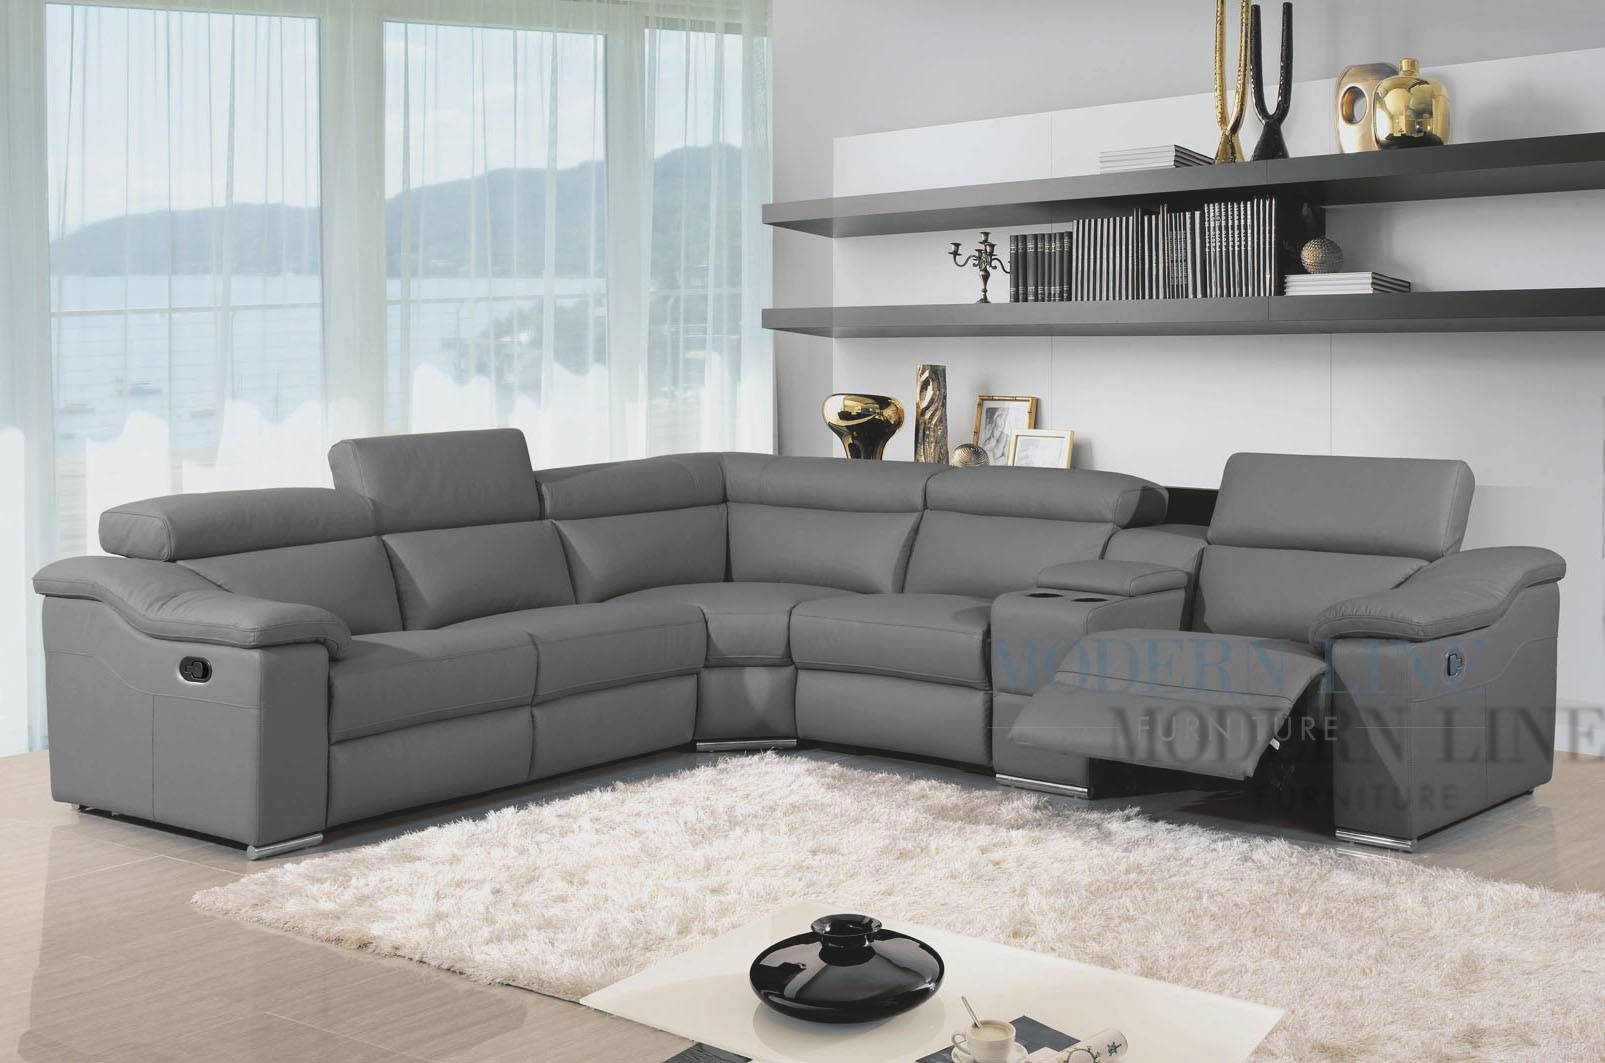 Decor: Cindy Crawford Leather Sofa | Rooms To Go Cindy Crawford Pertaining To Cindy Crawford Leather Sofas (View 4 of 15)